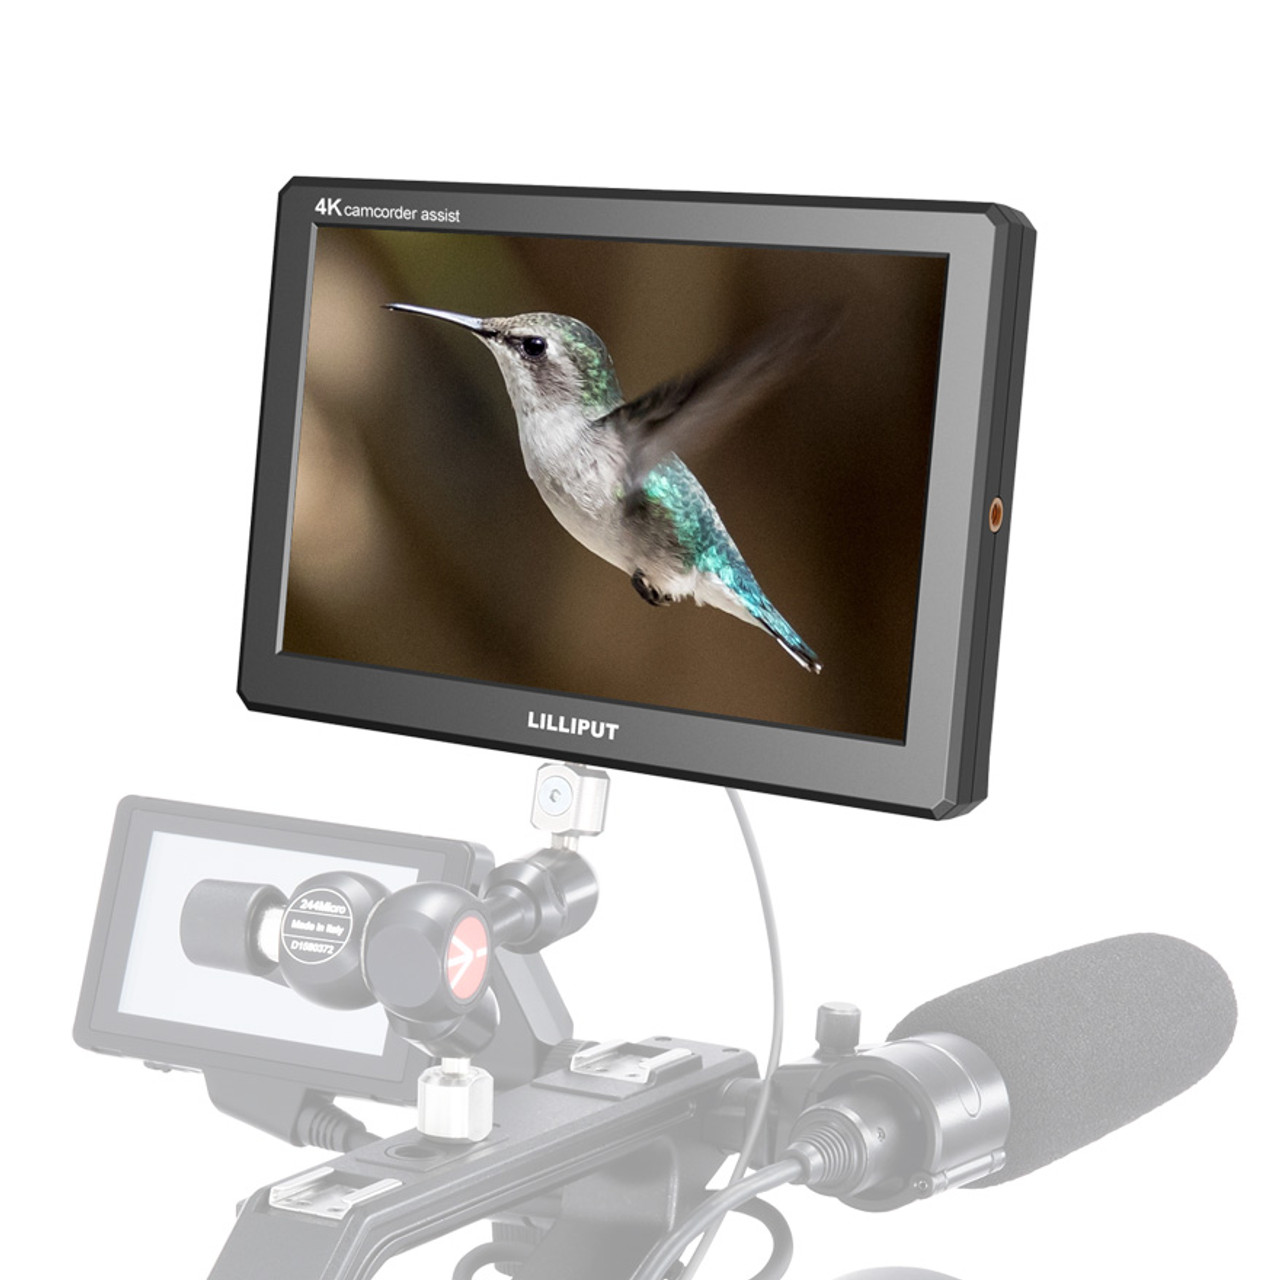 A8s Full HD 8.9 Inch Monitor with 4K camera assist with 3G-SDI